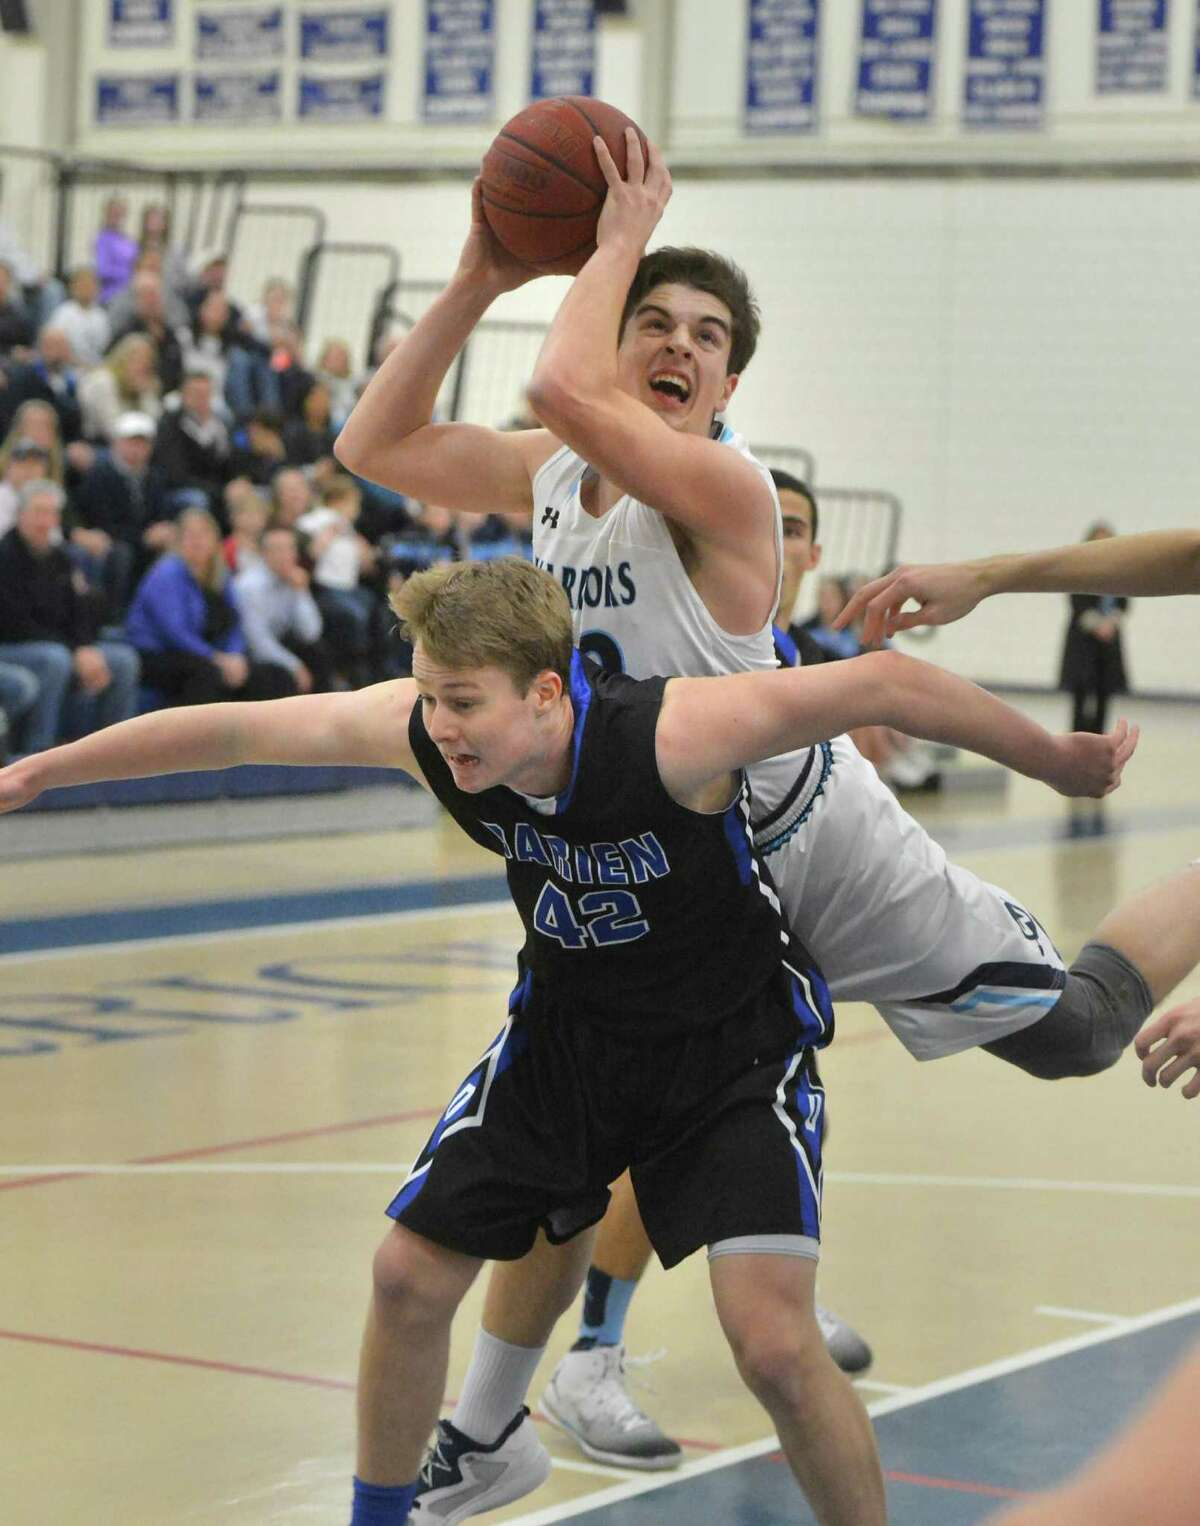 Wilton's Kyle Shifrin shoots over the back of Darien's Andrew Darby during Tuesday's game at Wilton High School. The Warriors stayed undefeated and improved their record to 10-0.